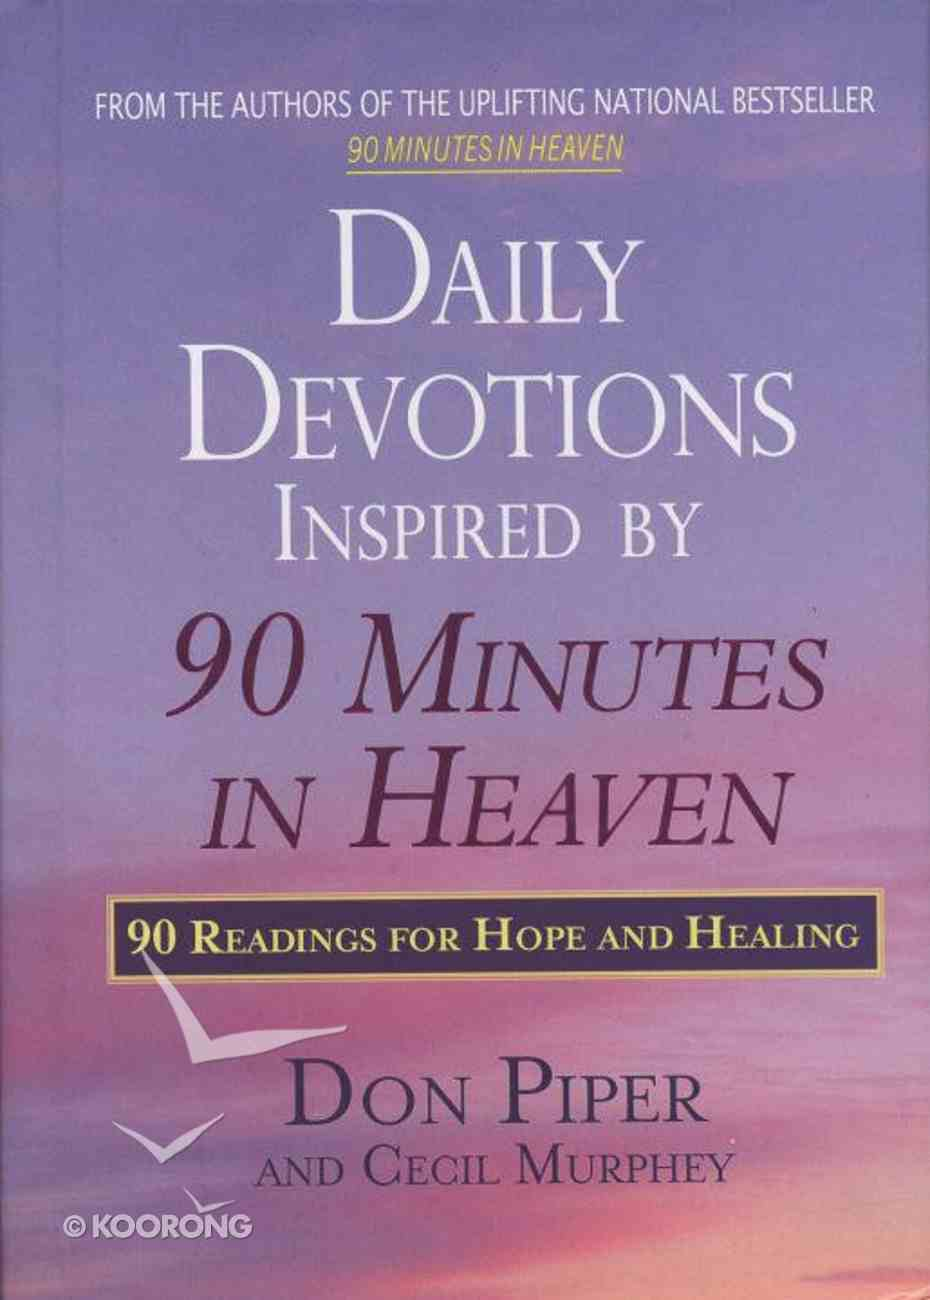 Daily Devotions Inspired By 90 Minutes in Heaven Hardback